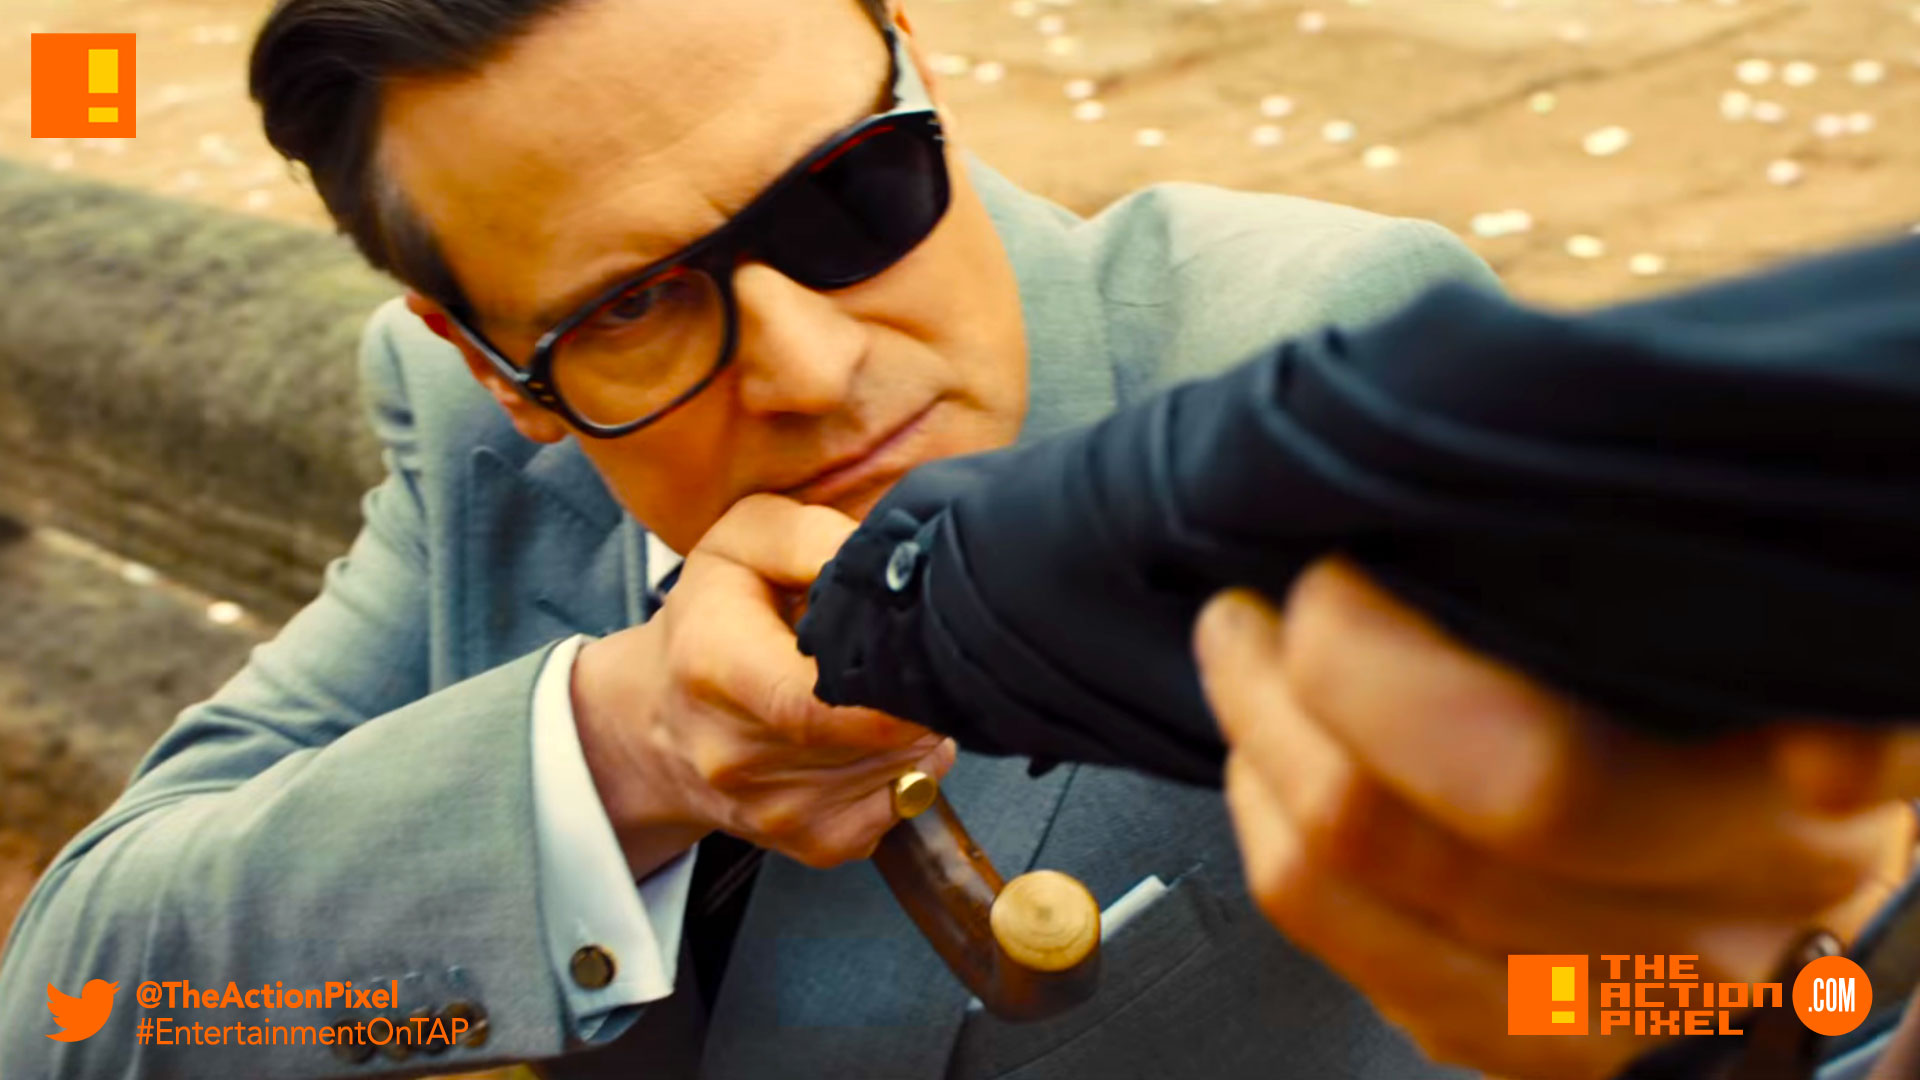 colin firth, kingsman, the golden circle, kingsman, the golden circle, kingsman 2, kingsman the golden circle, kingsman: the golden circle, eggsy, entertainment on tap, the action pixel